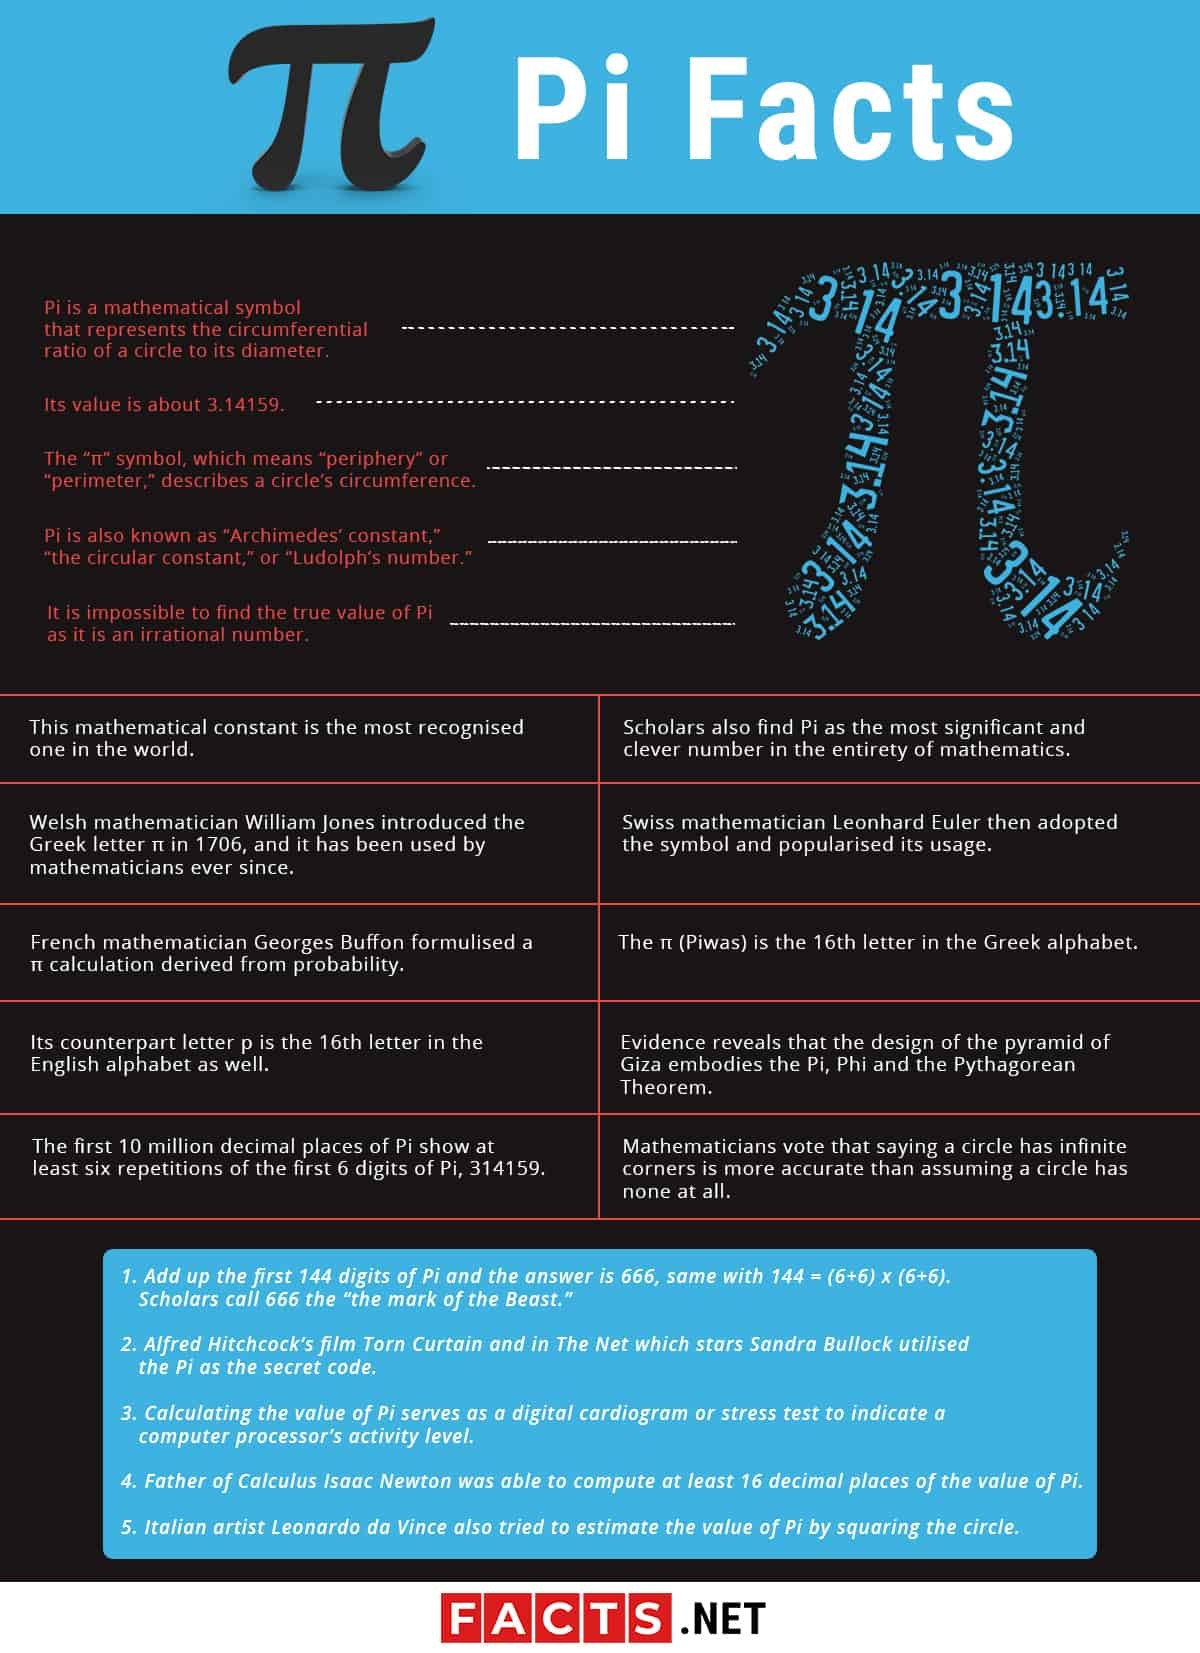 Pi Facts Infographics